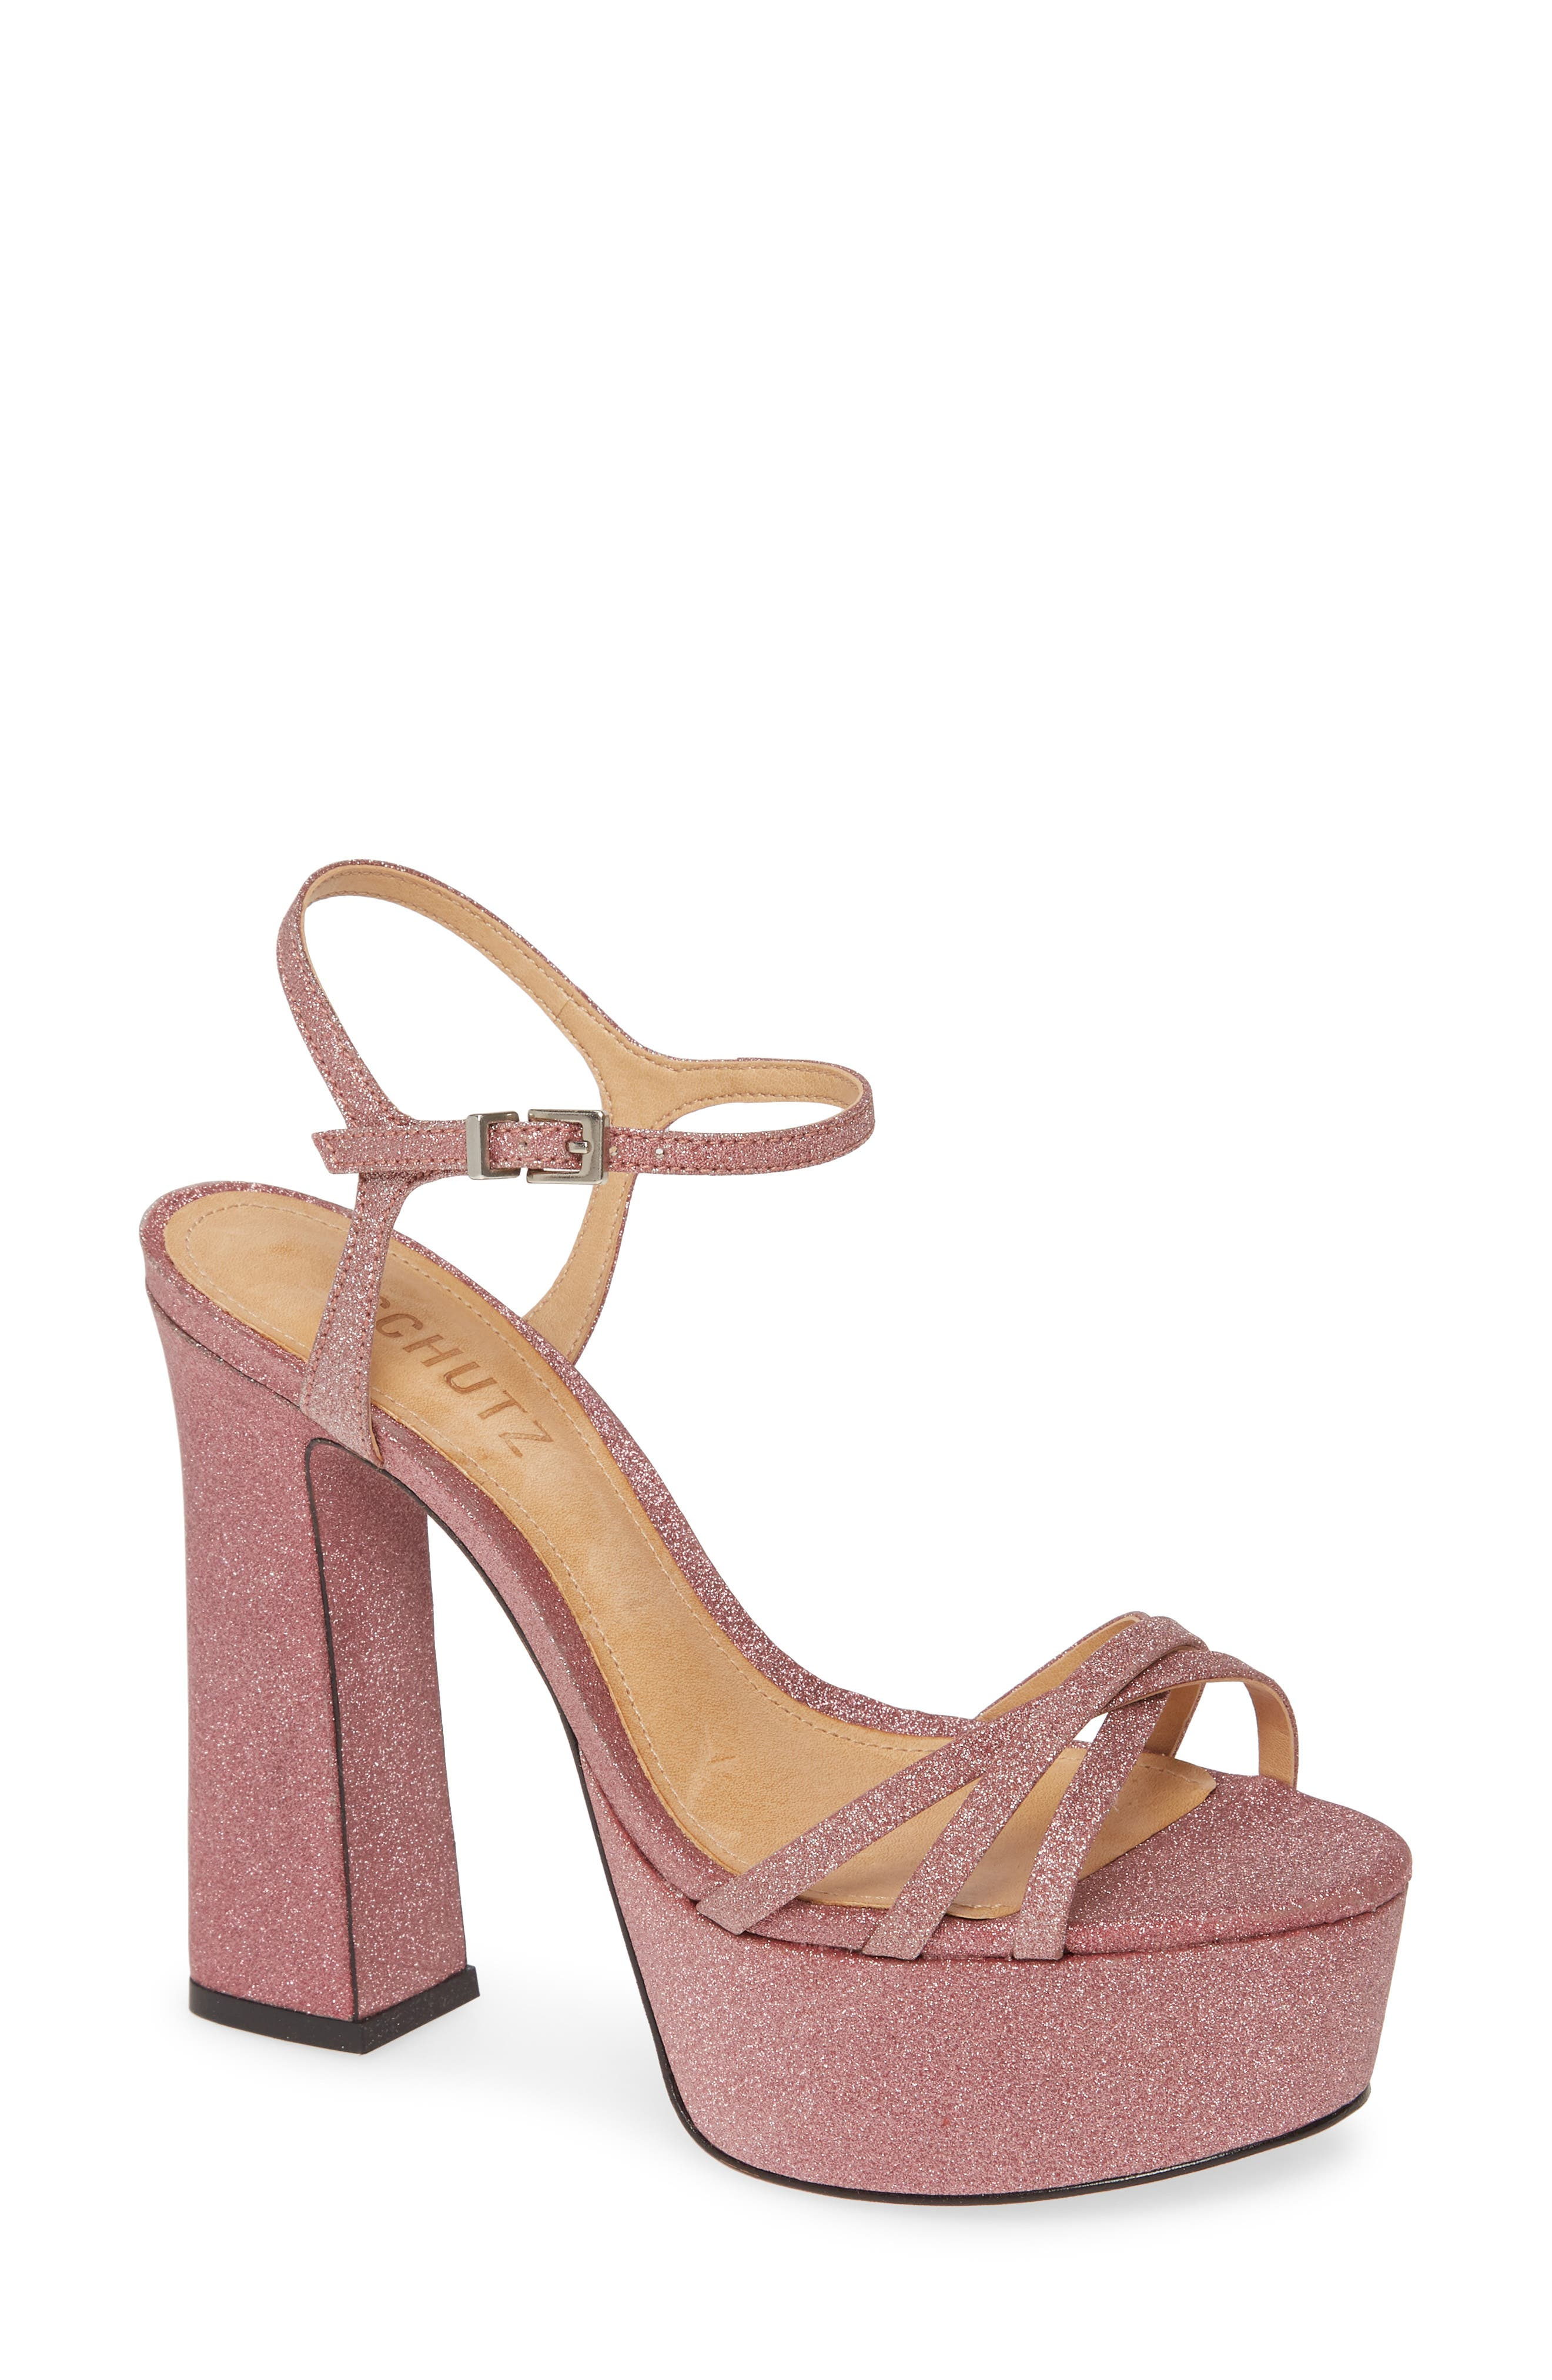 A platform sandal with some powerful curves features a sky-high heel and glitter that doesn\'t quit, sparkling from the ankle strap to the sole. Style Name: Schutz Landrie Glitter Platform Sandal (Women). Style Number: 5911288. Available in stores.